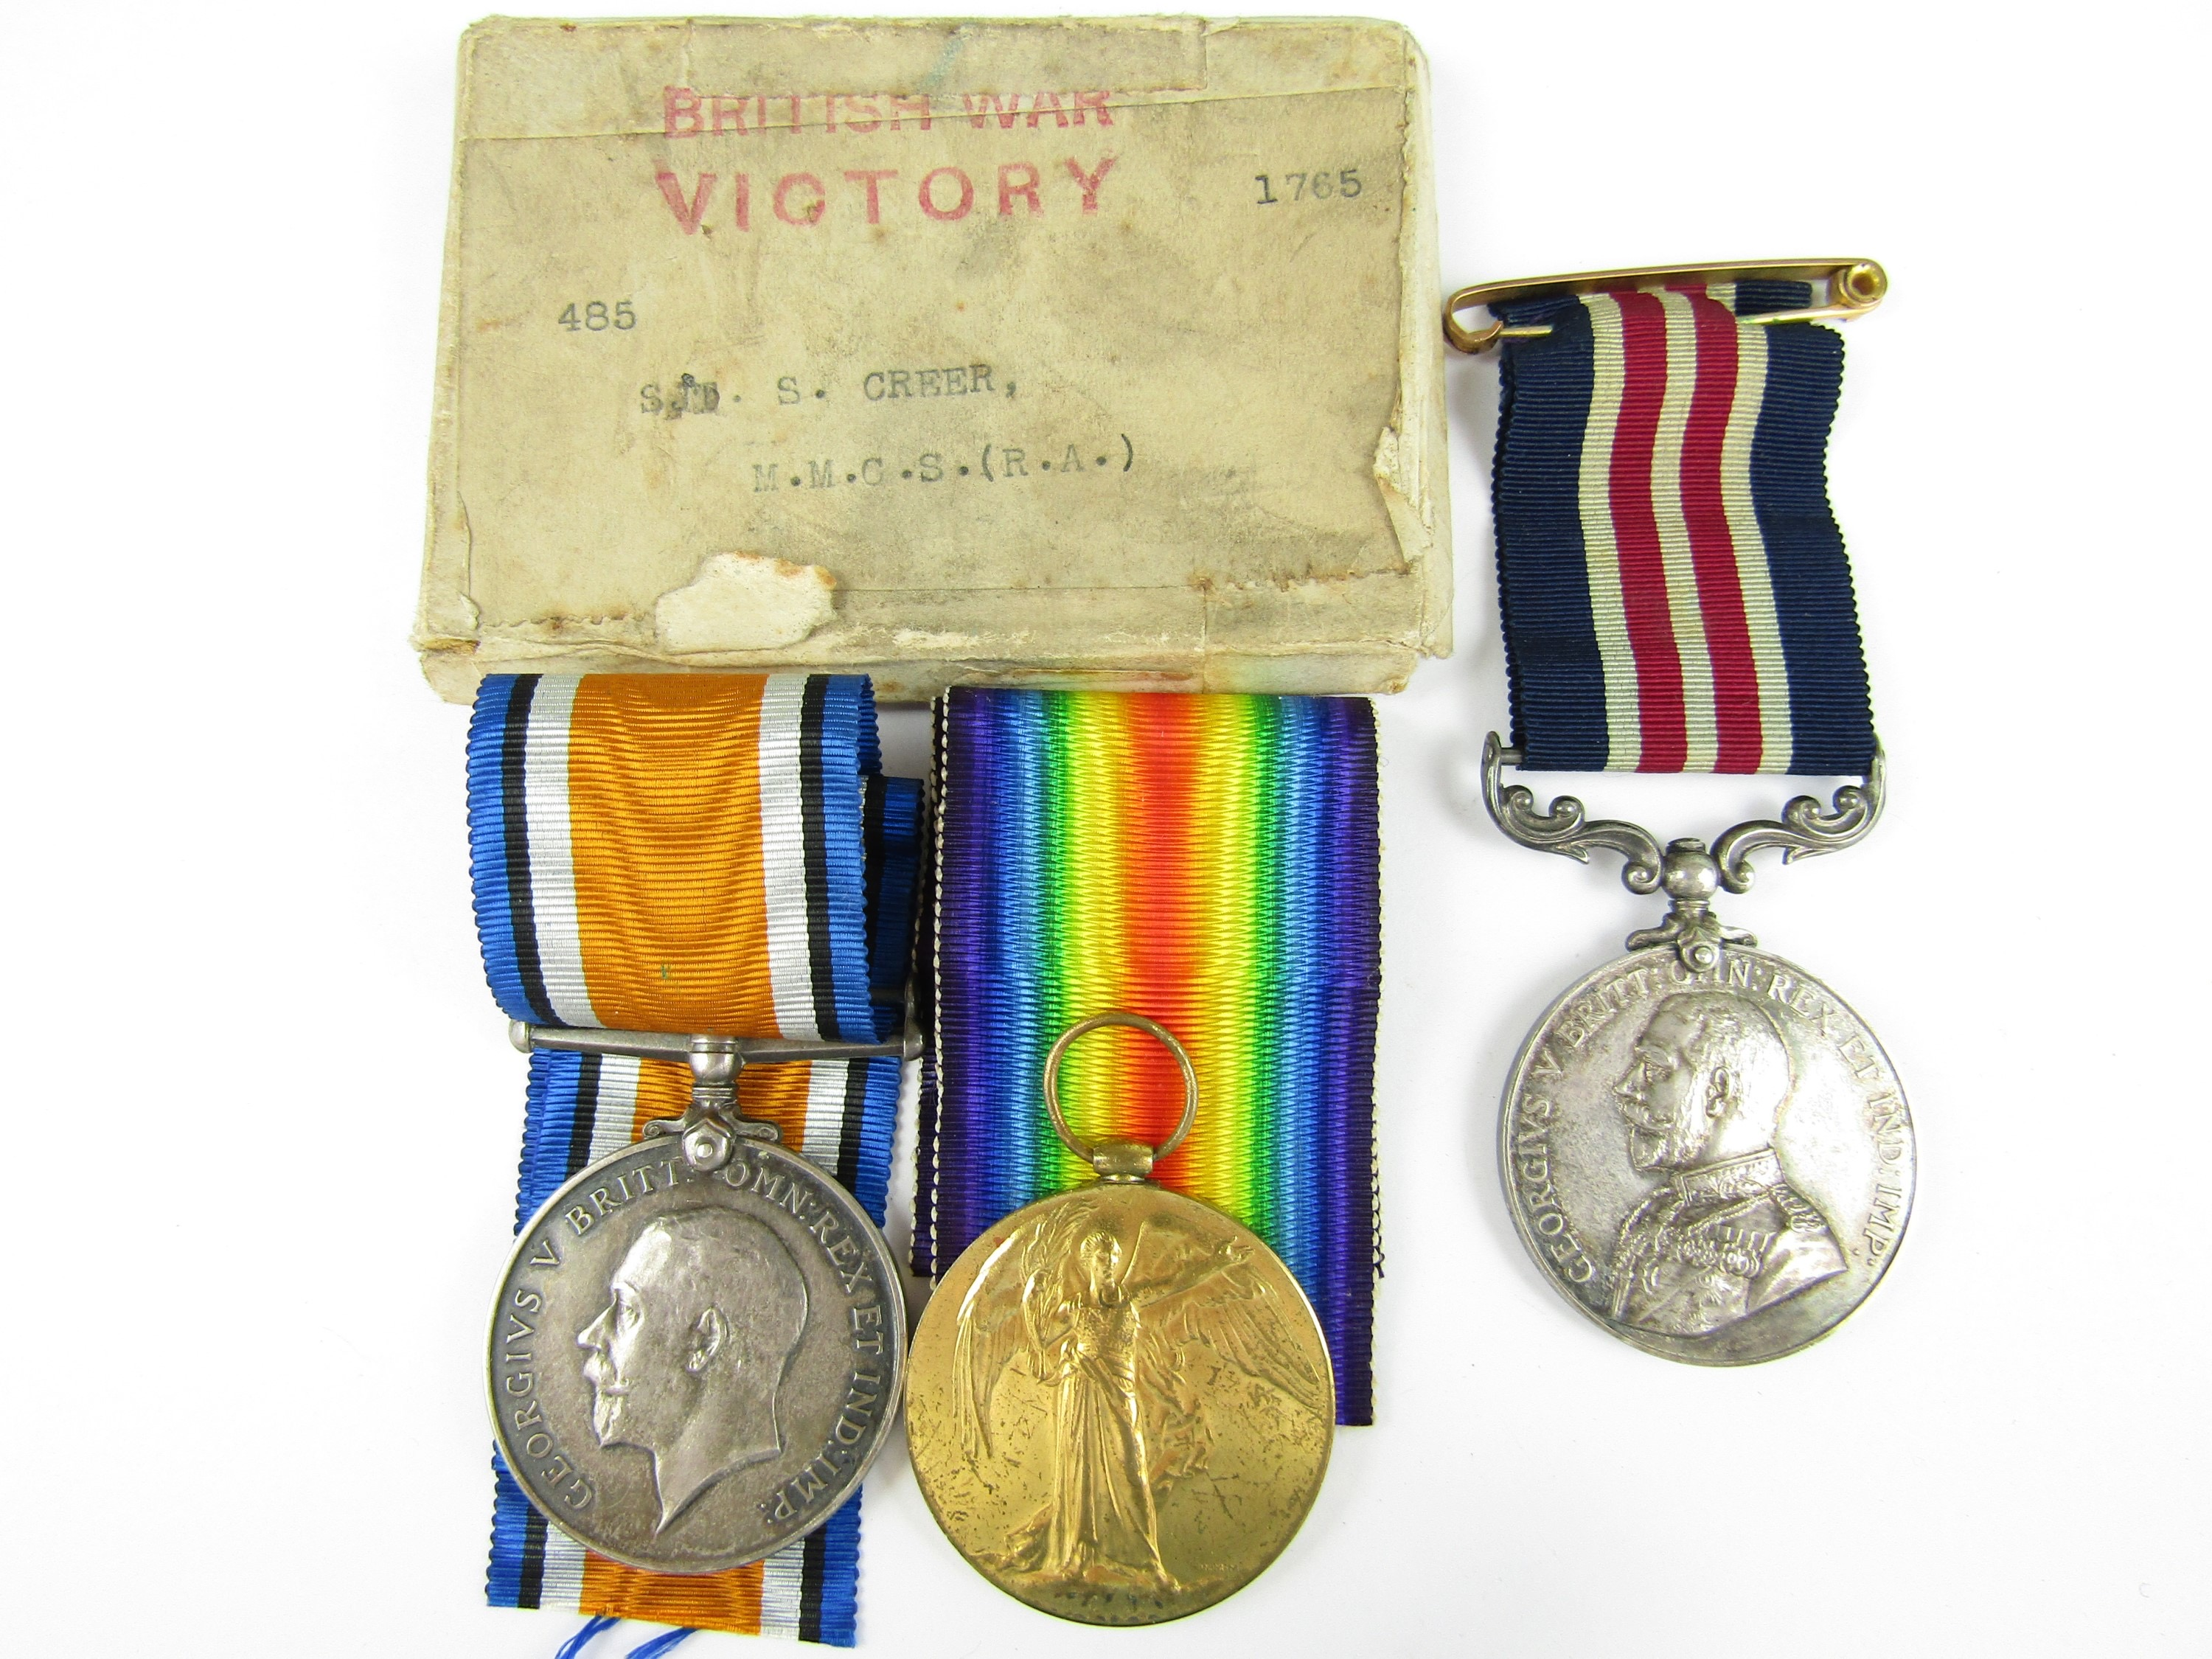 Lot 8 - A Military Medal with British War and Victory Medals to 485 Sjt / A Bmbr S Creer, No 8 Battery,